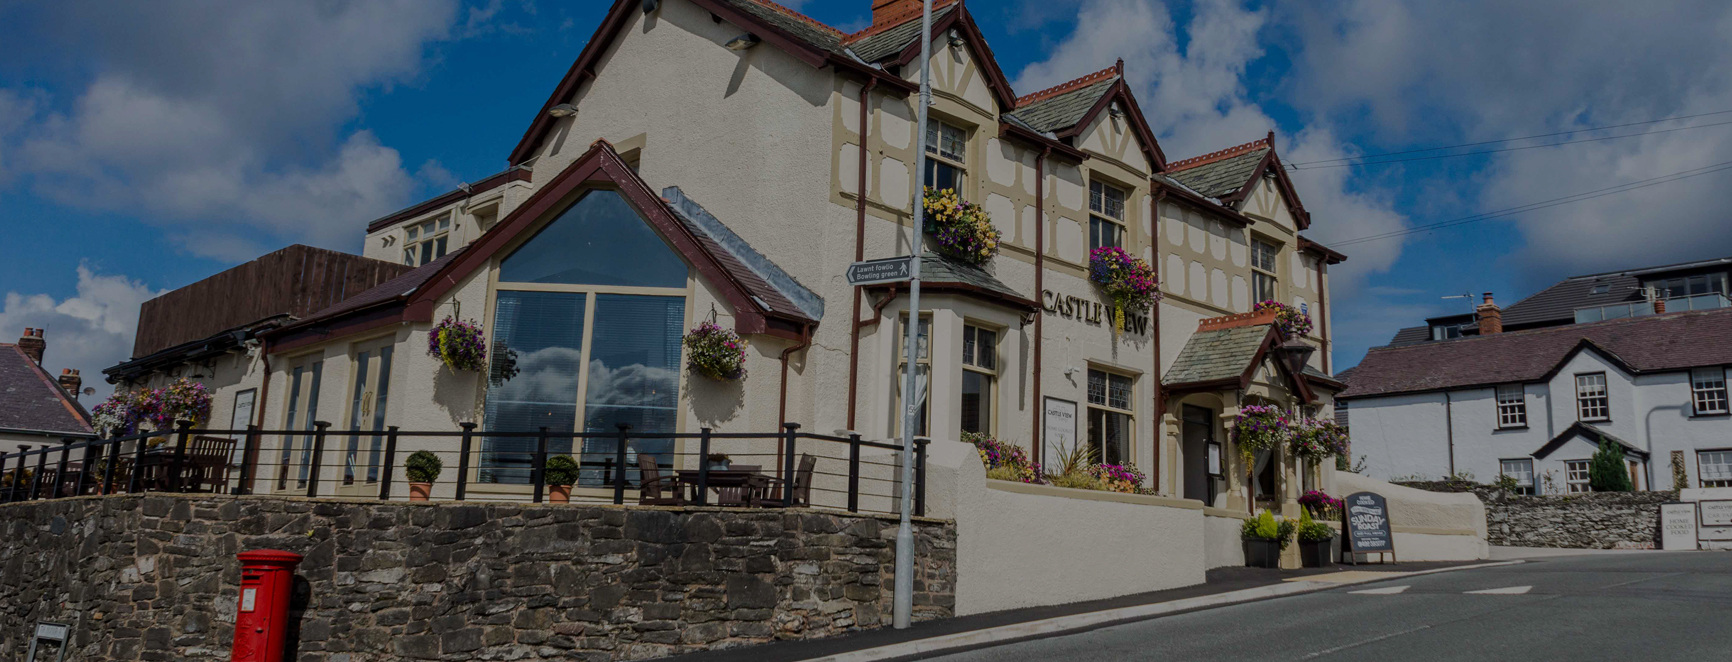 Castle View bar & restaurant, Deganwy, North Wales